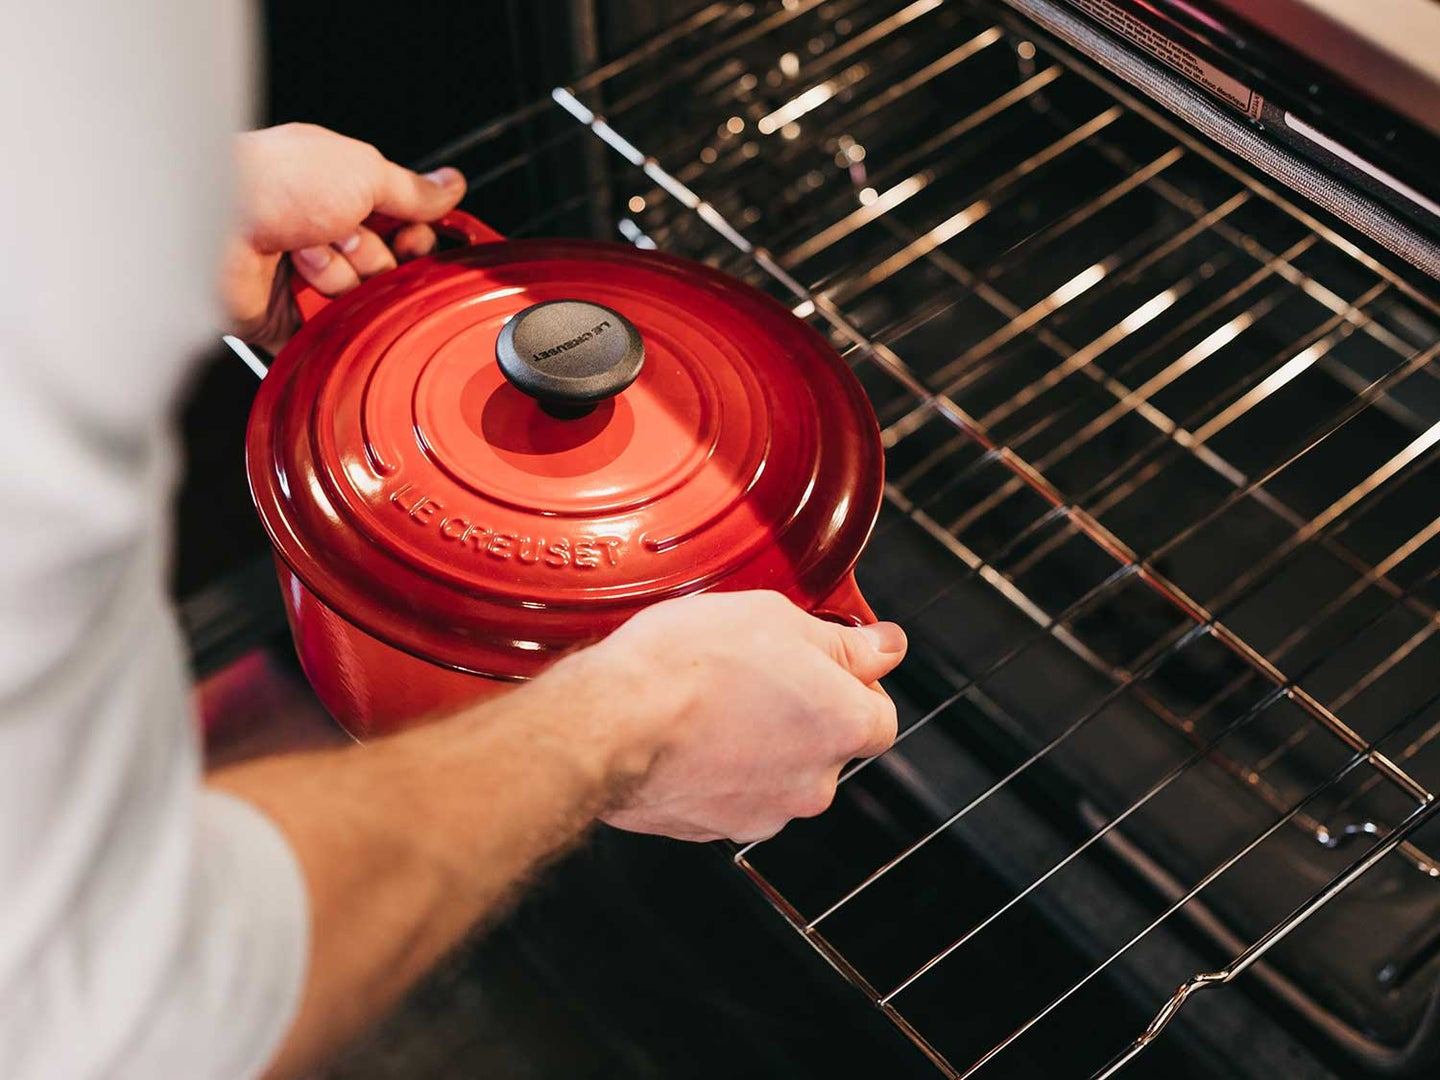 Man puts cast iron dutch oven into oven.